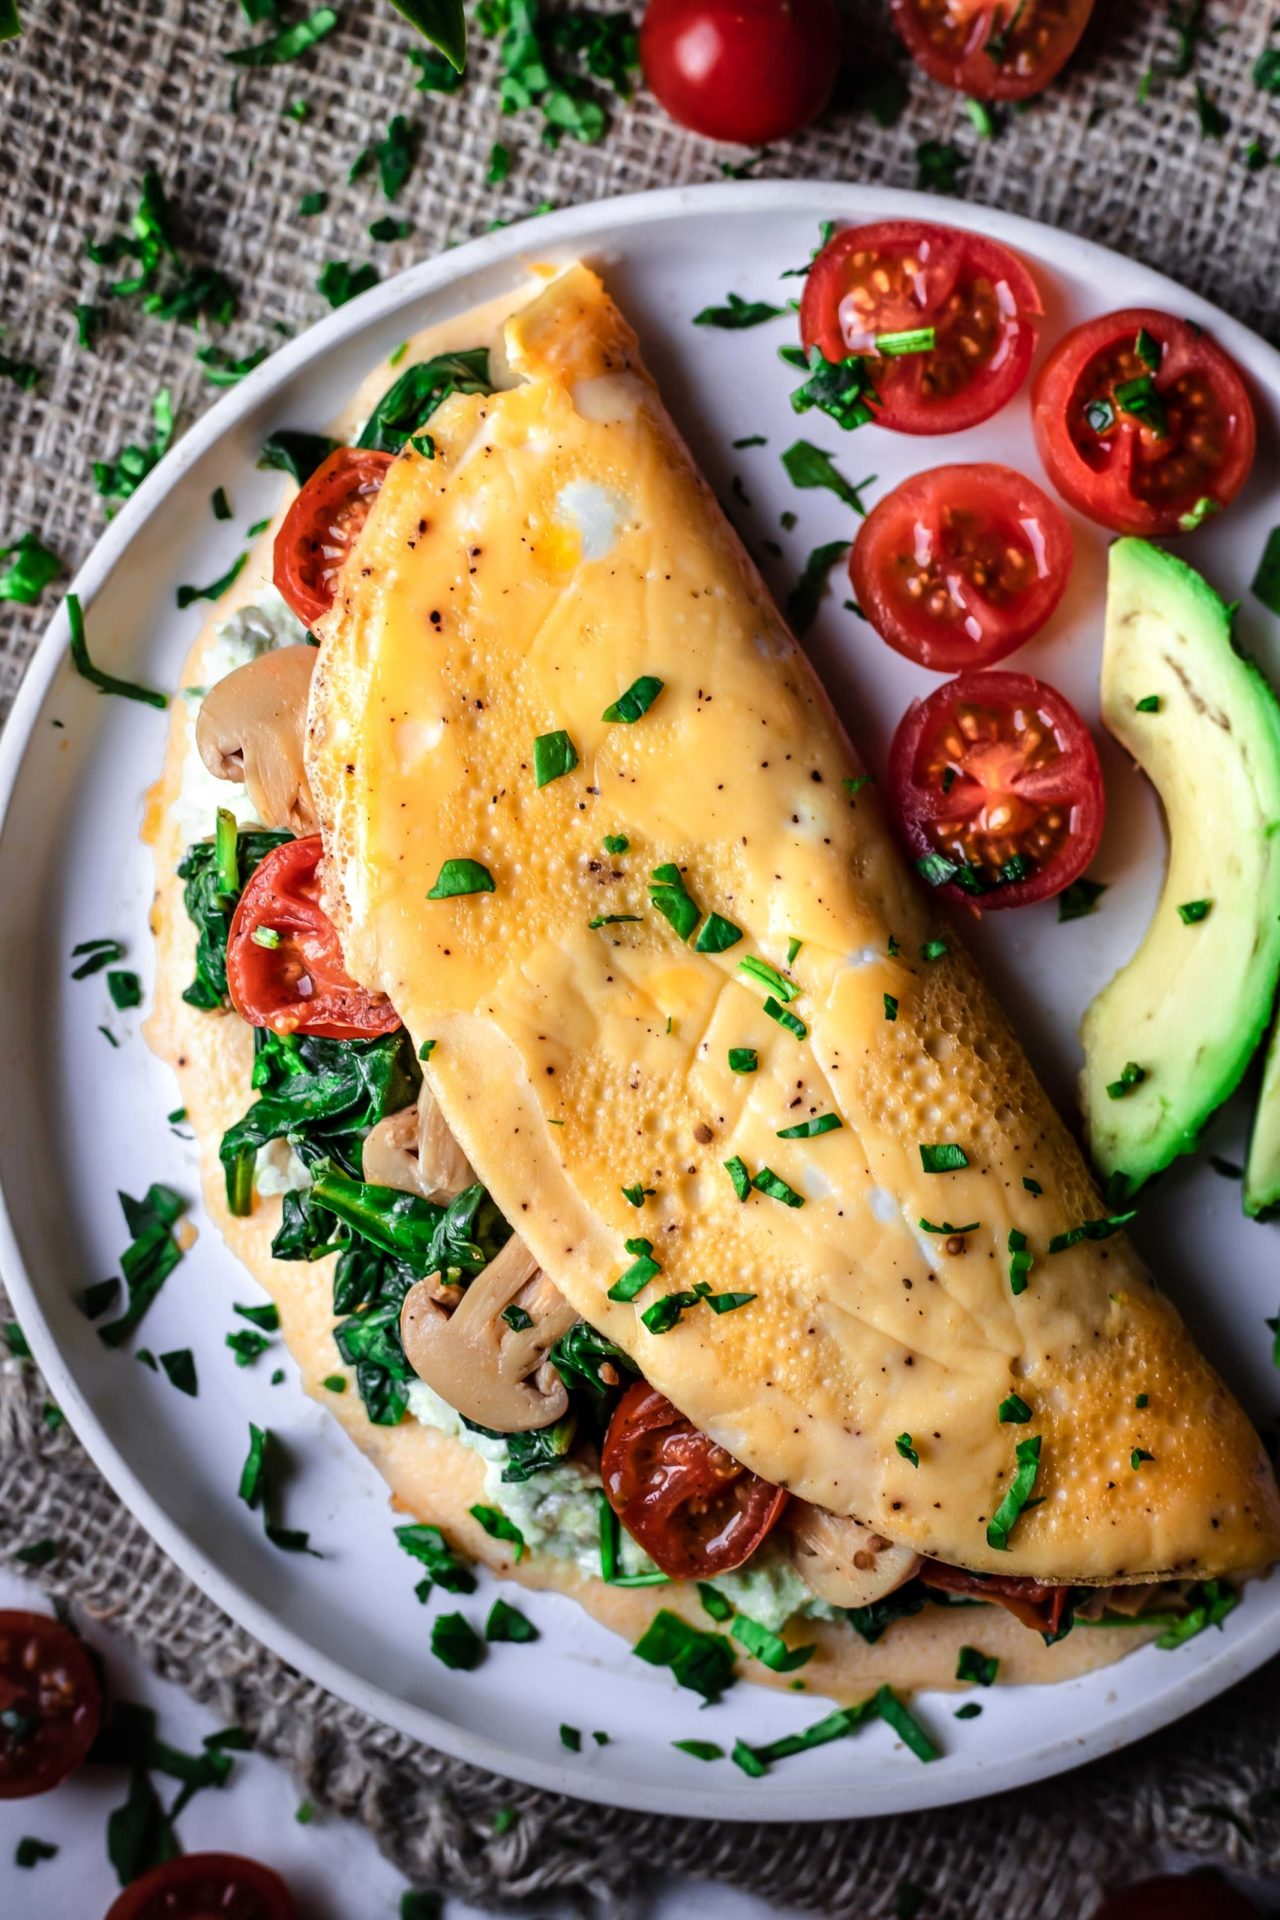 This Low FODMAP Veggie Omelet is super simple to make, savory, loaded with veggies, healthy, satisfying and so delicious!